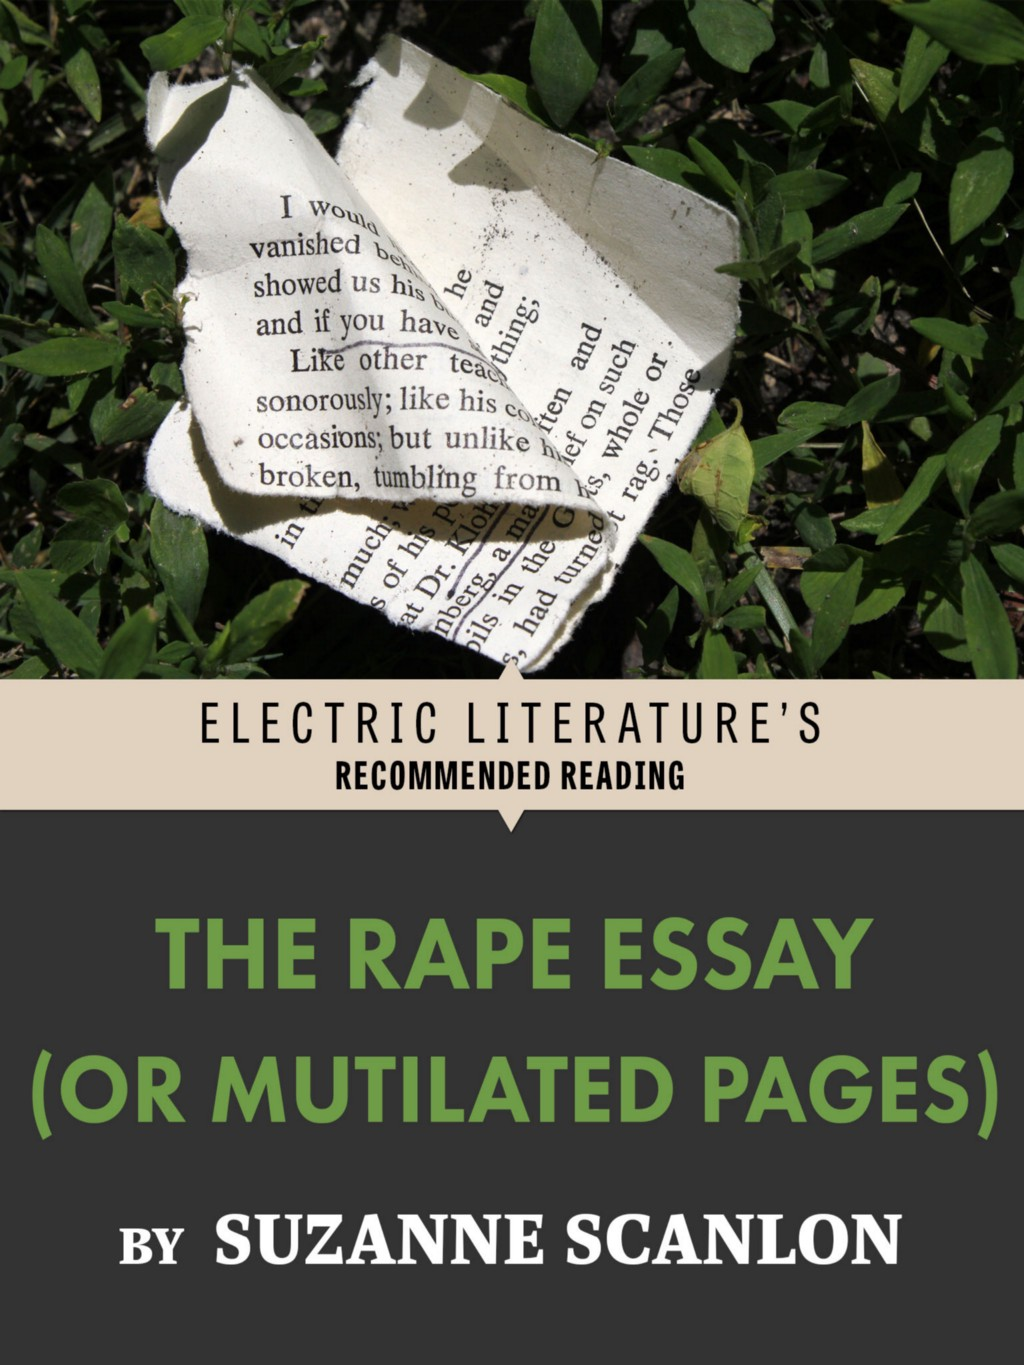 """The Rape Essay (Or Mutilated Pages)"""" by Suzanne Scanlon"""